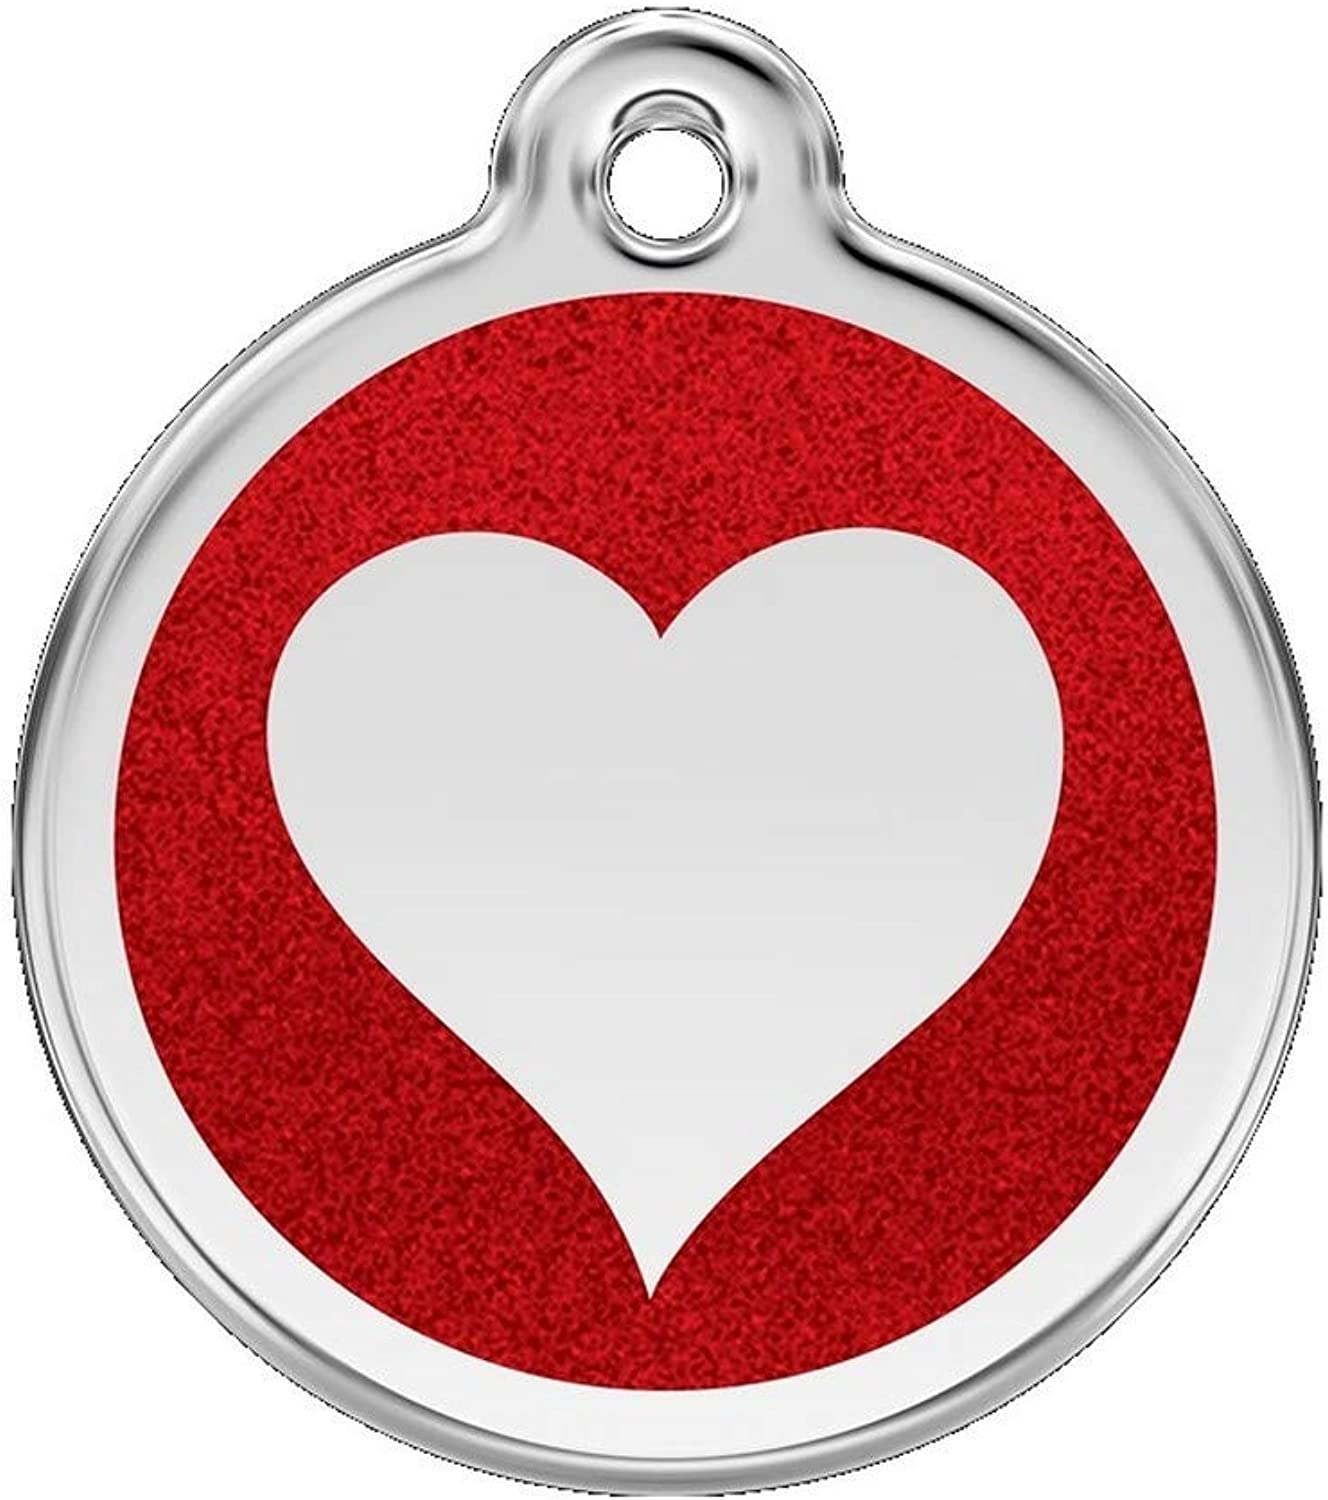 Red Dingo Stainless Steel with Glitter Pet I.D. Tag  Heart (red, small)